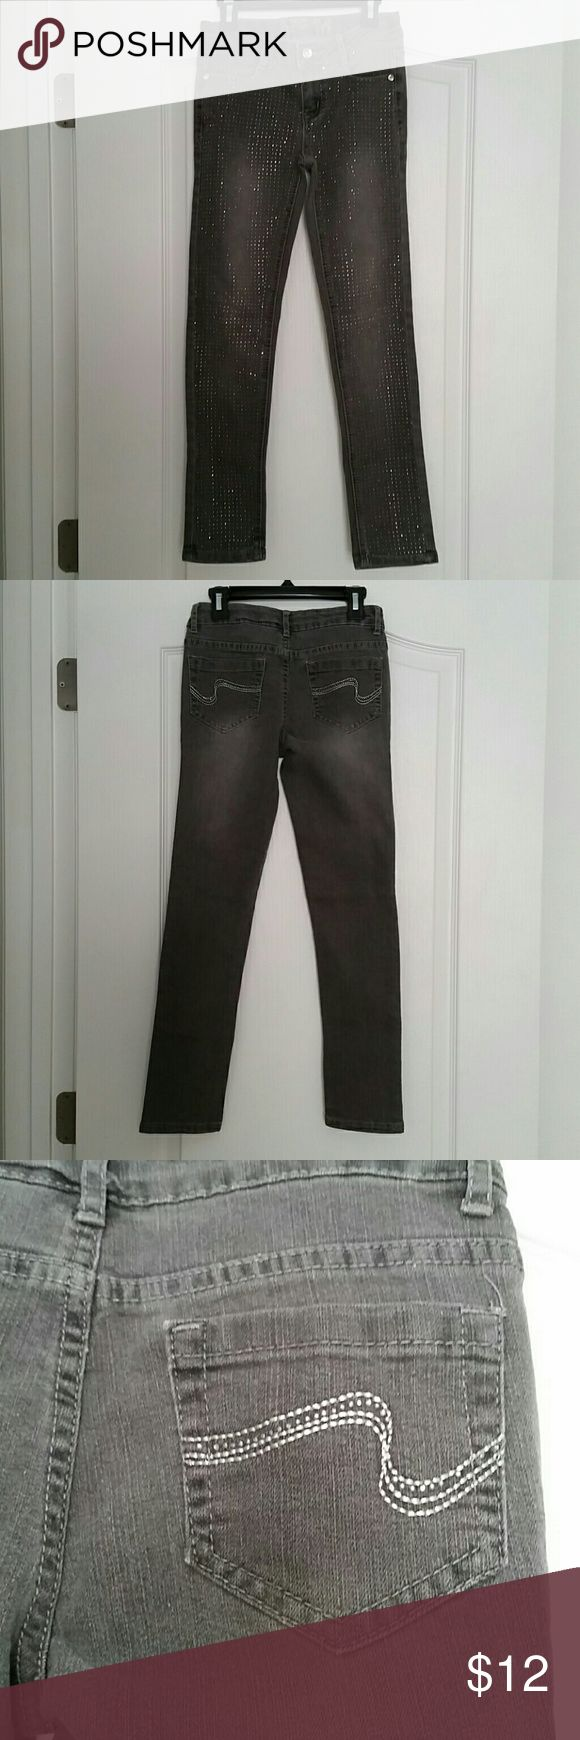 Girl's Gray Rhinestone Jeans - Sz. 10 R Nice girl's gray jeans with rhinestones on the front and back pockets.  They do have the pull tabs inside the waistband in order to adjust the size. Total Girl Bottoms Jeans